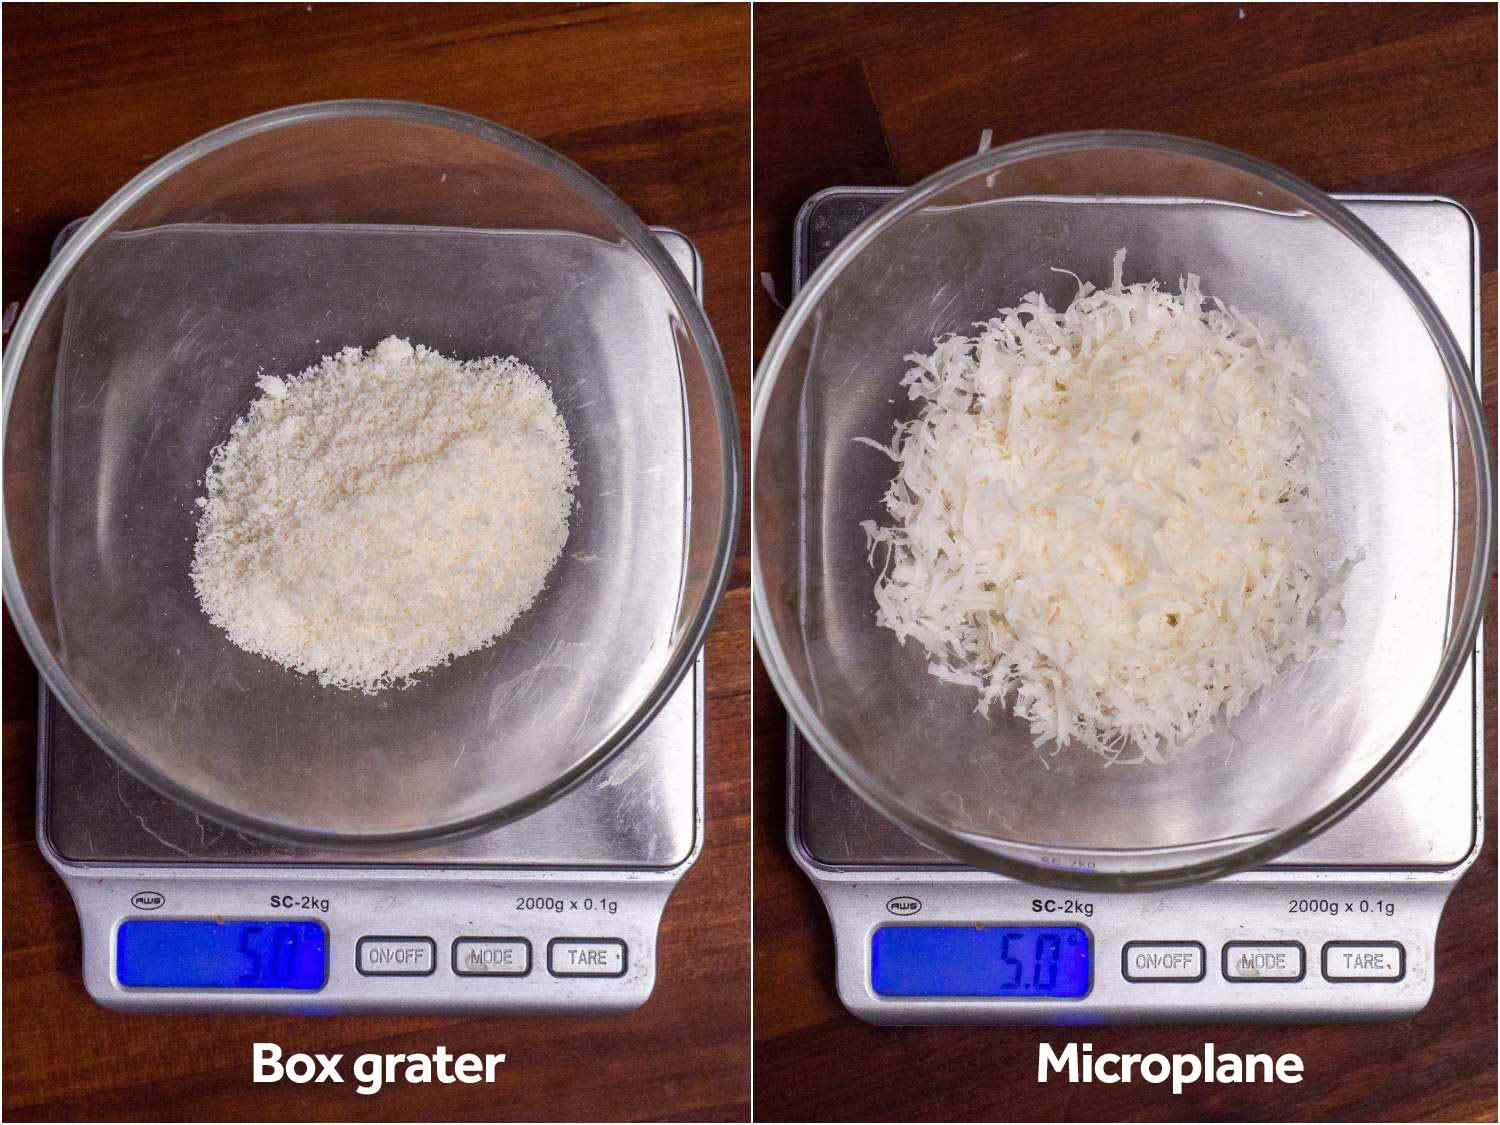 Two 5-gram samples of Parmesan cheese sit in small glass dishes on scales; the box-grated samples clearly takes up less volume than the Microplane sample